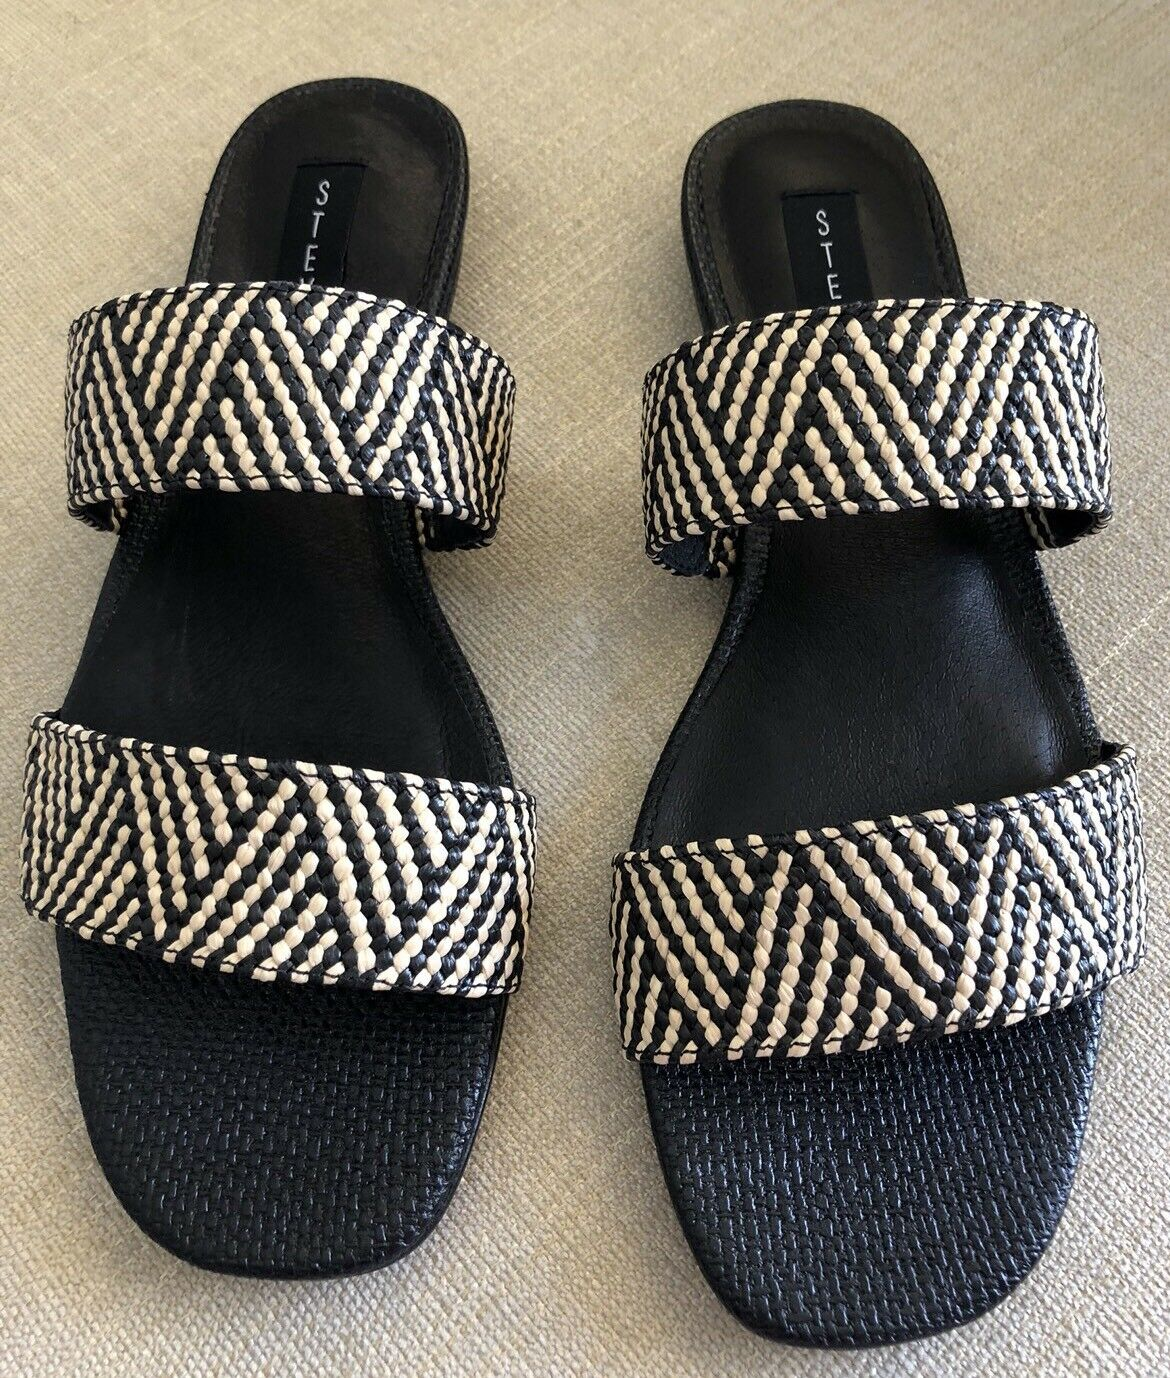 Steven By Steve Madden Friendly Black Tan Raffia Seaside Seaside Seaside Sandals. NWT. Size 8.5. 159399